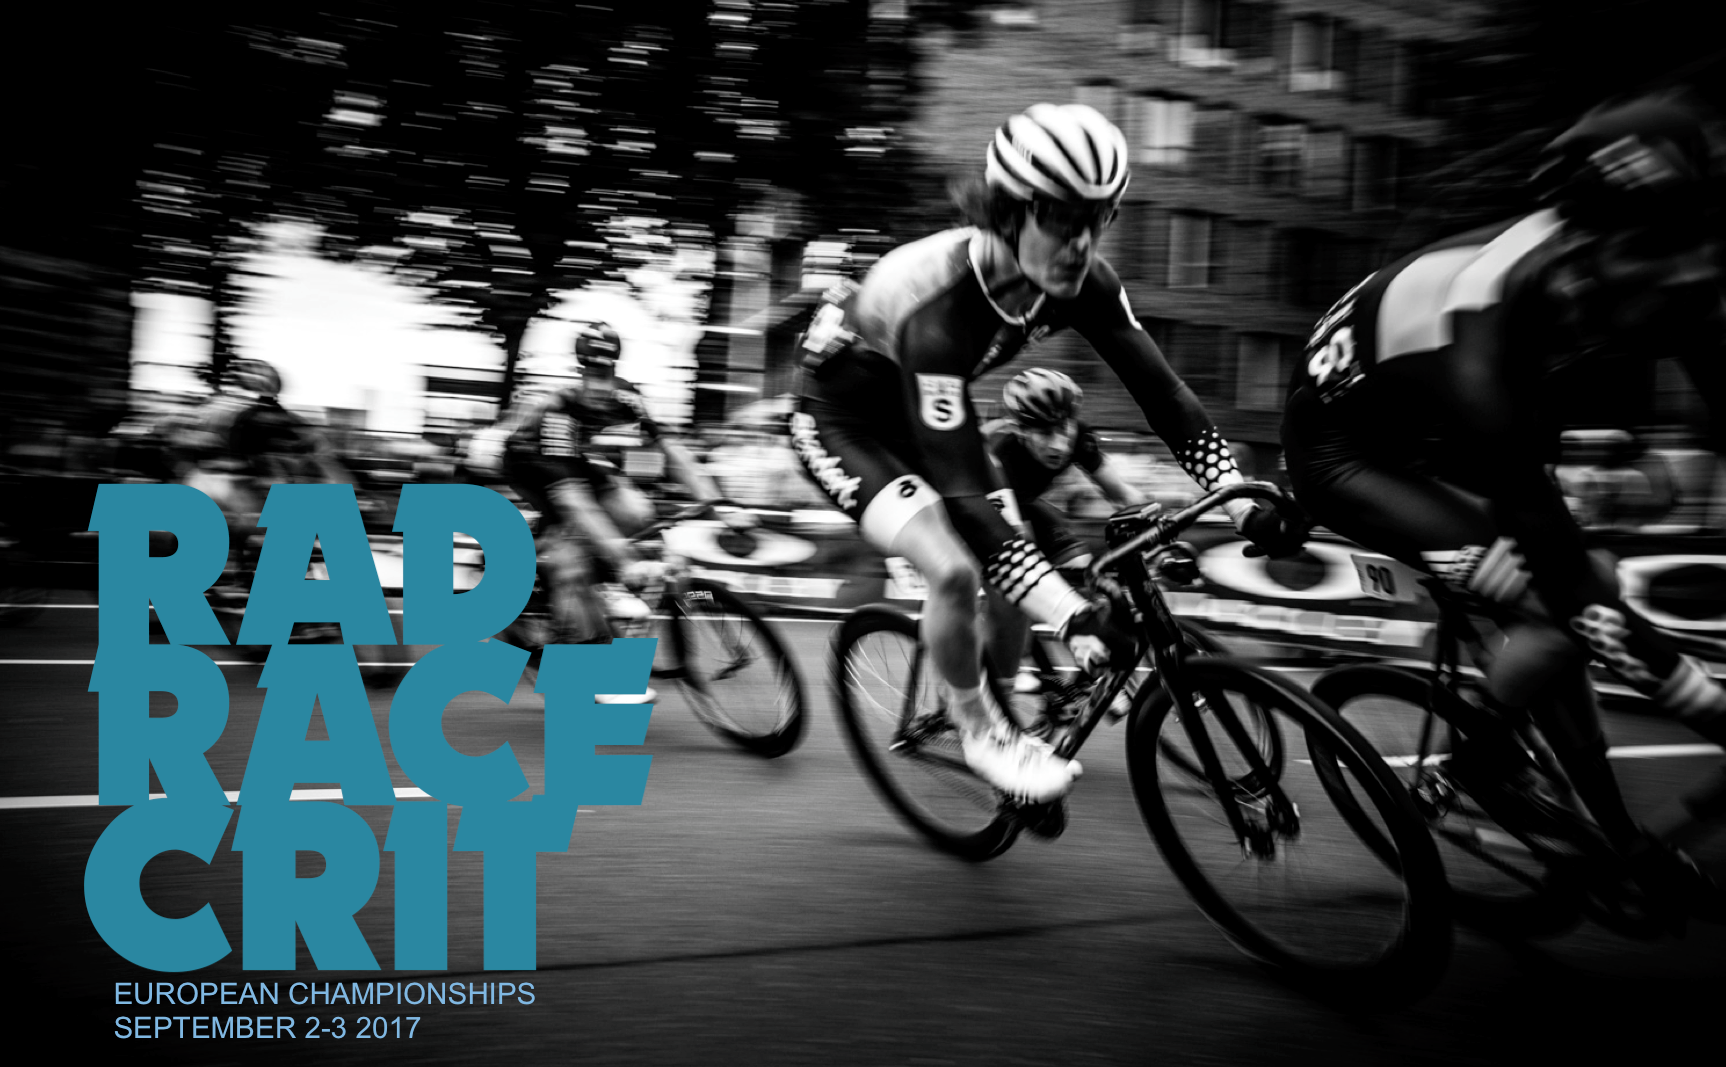 The RAD RACE CRIT European Championships in Ostende, Belgium on Sept. 2/3 2017